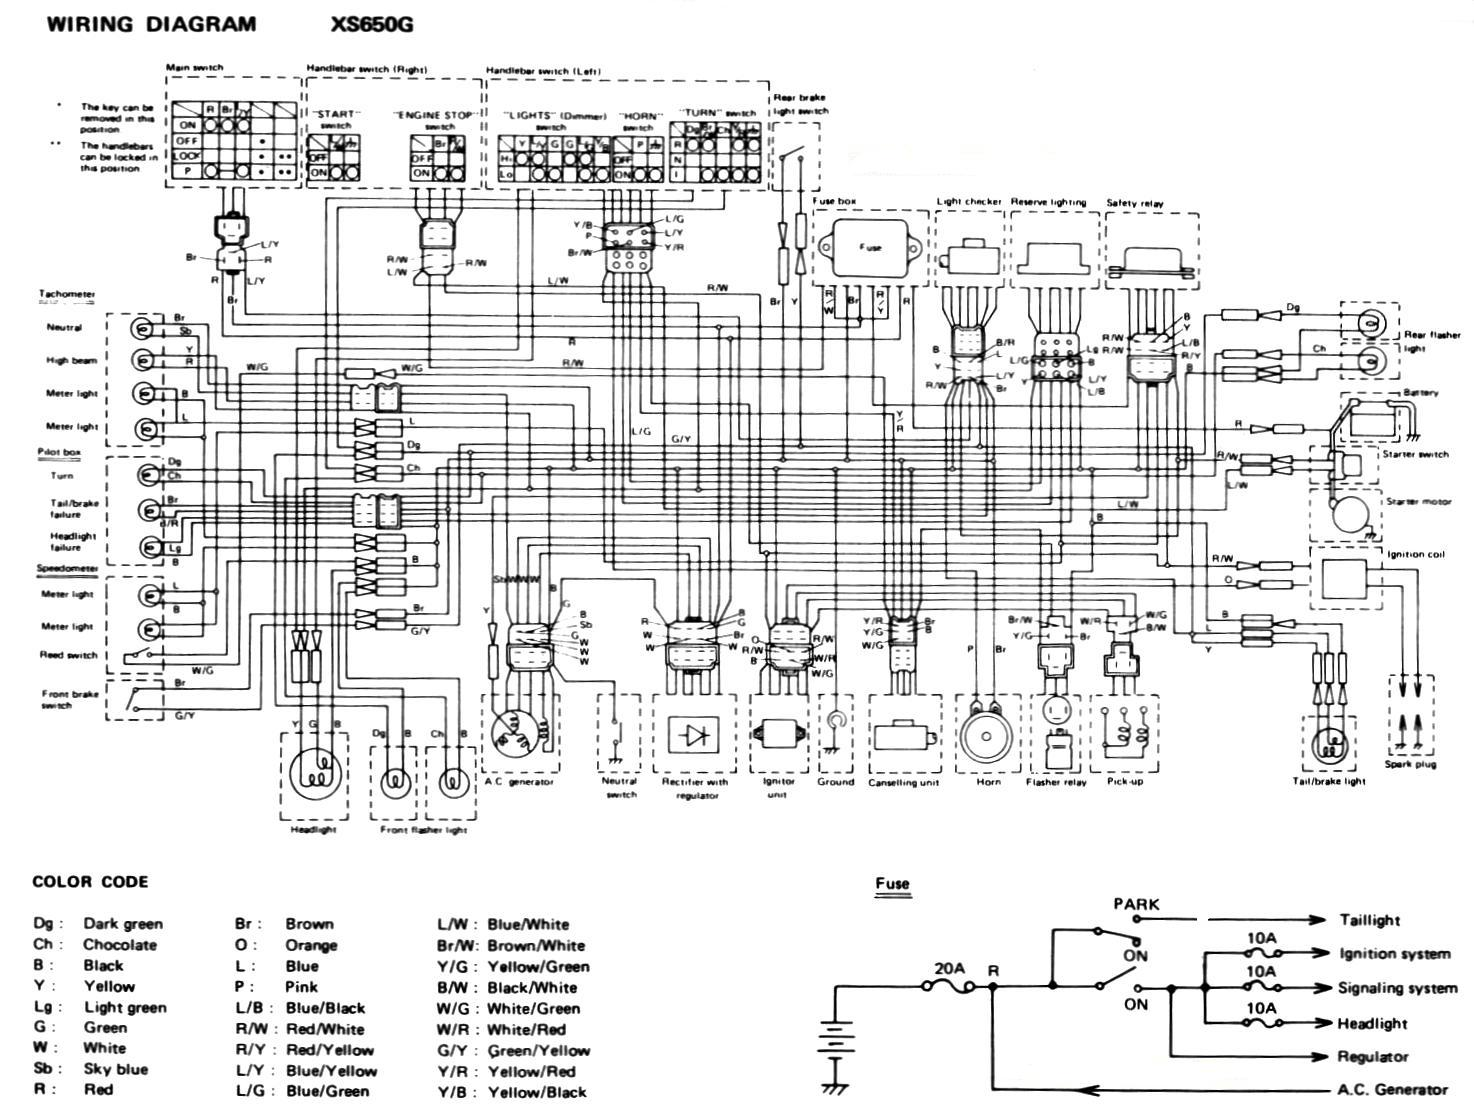 80XS650G t500 wiring diagram series and parallel circuits diagrams wiring 1975 xs650 wiring diagram at gsmx.co